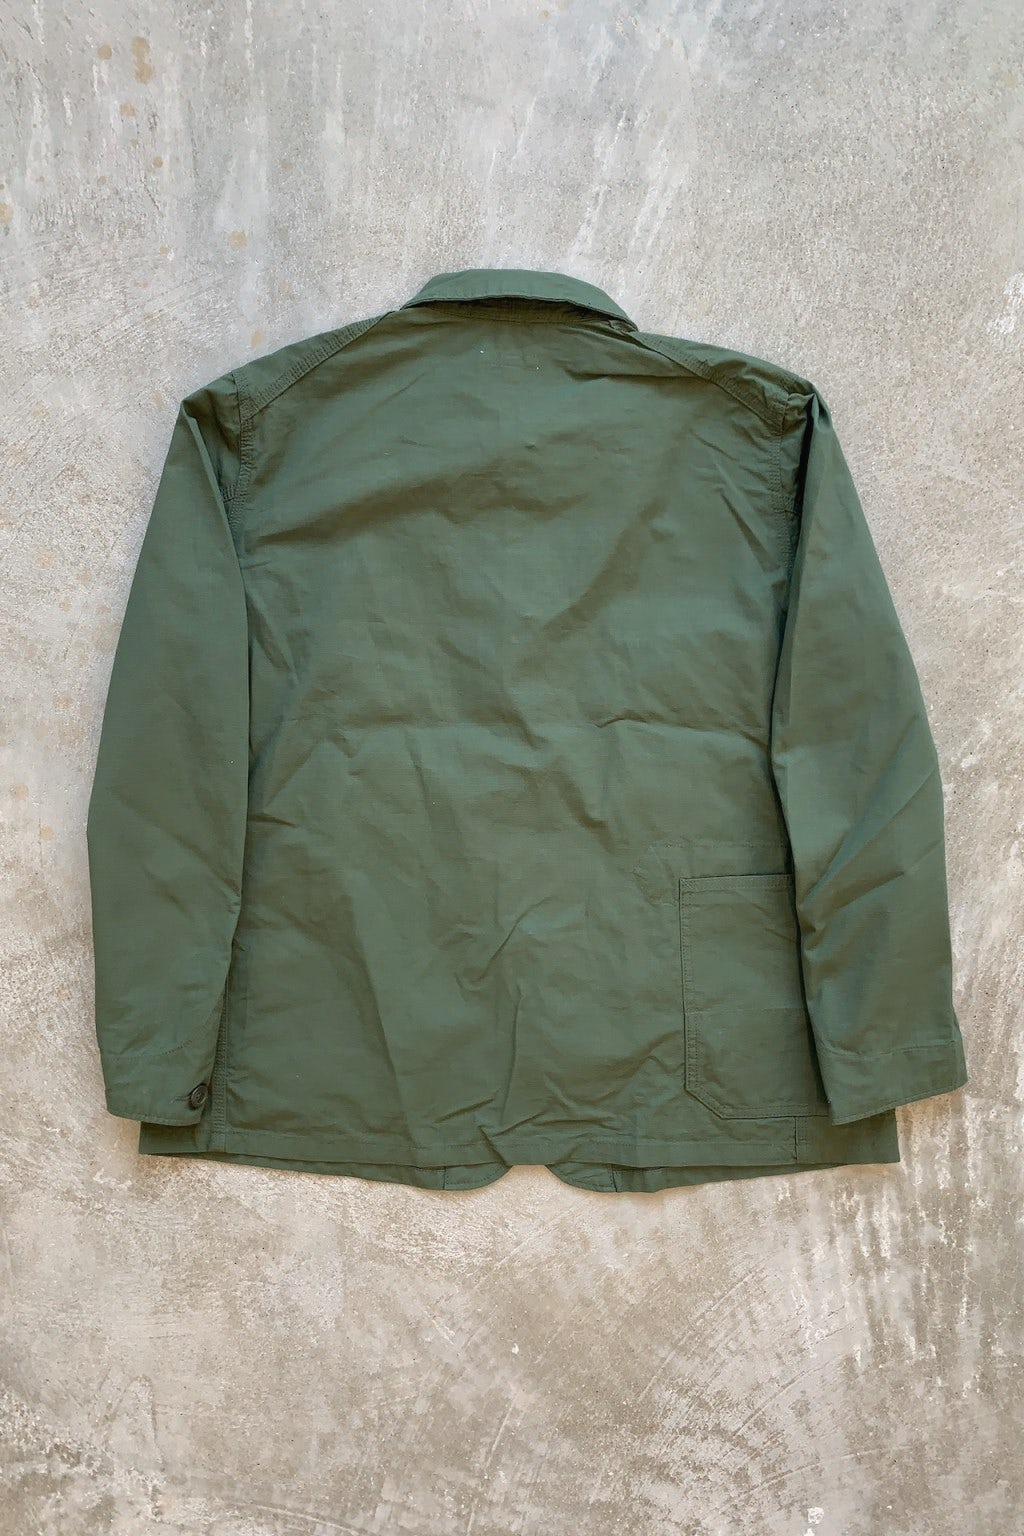 Engineered Garments Work Jacket Olive Ripstop